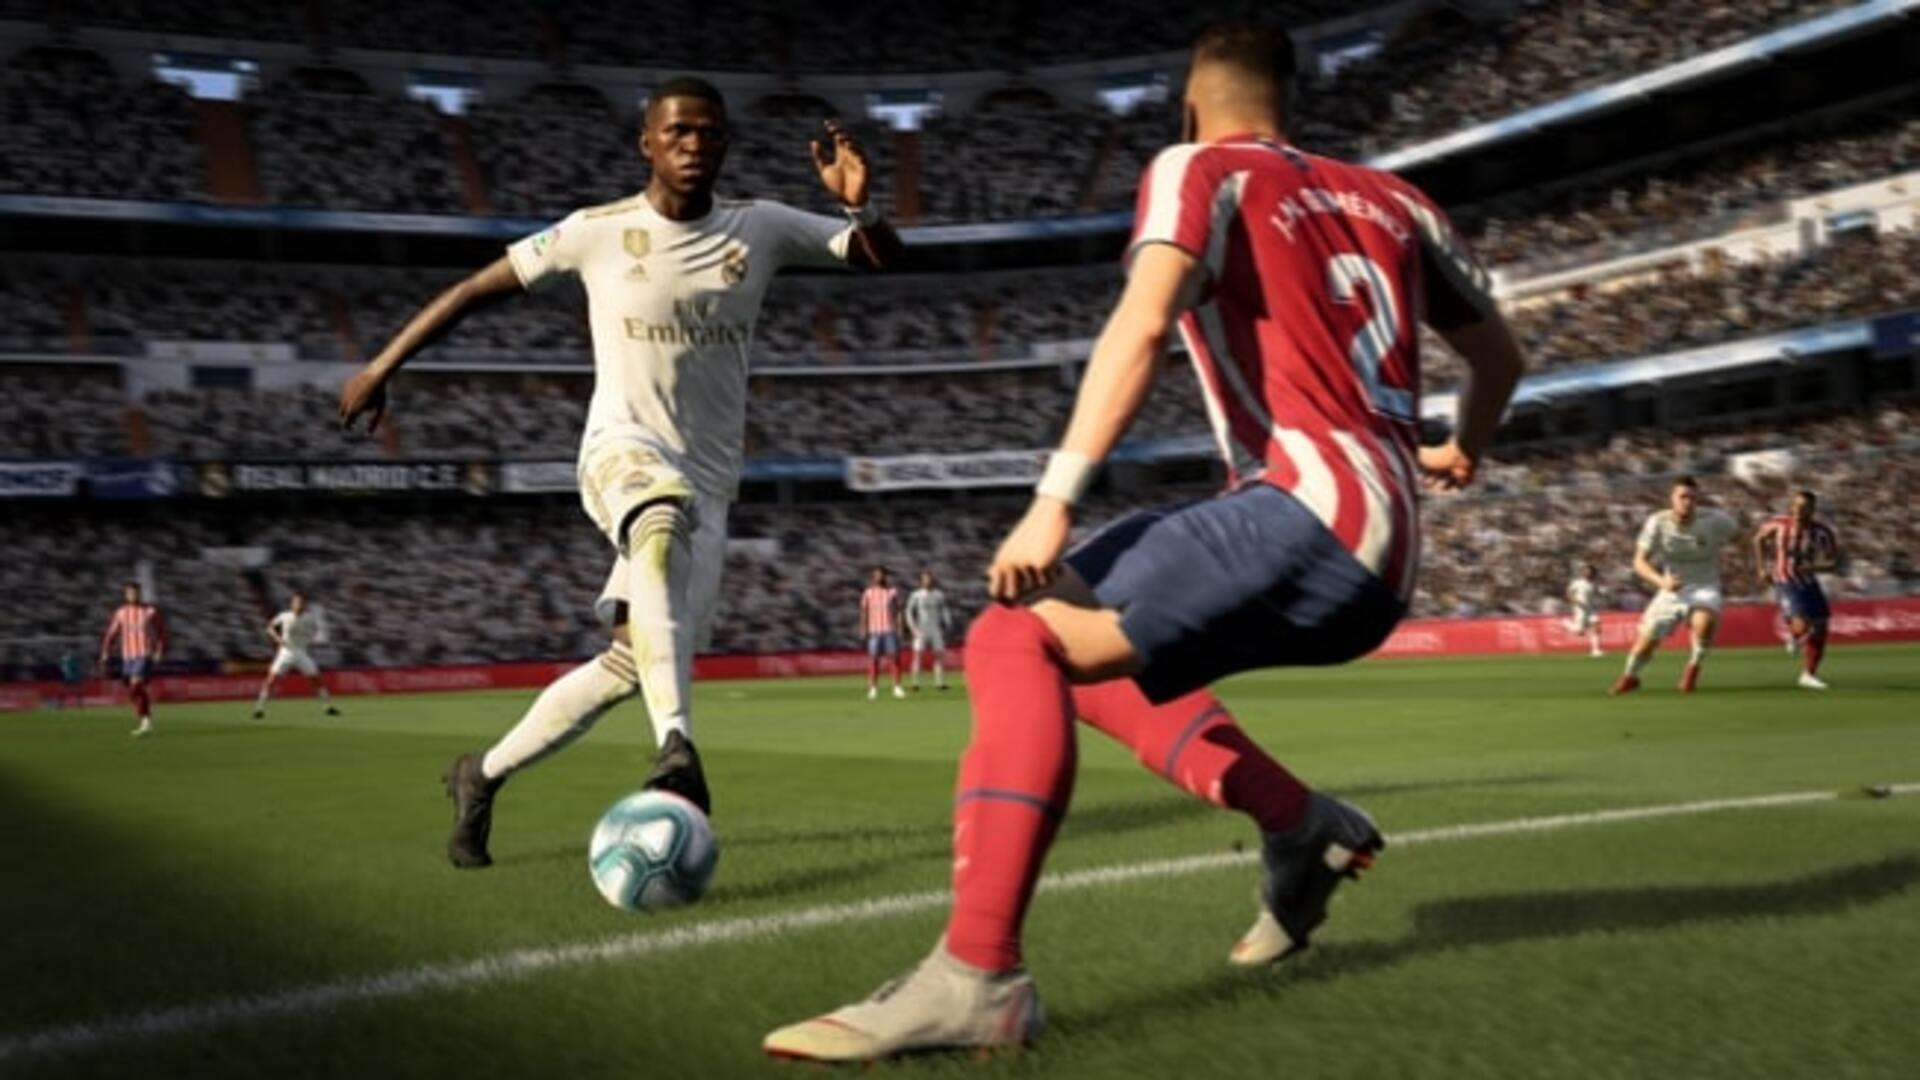 FIFA 20 Pro Clubs: Changes, New Match Types, New Positions